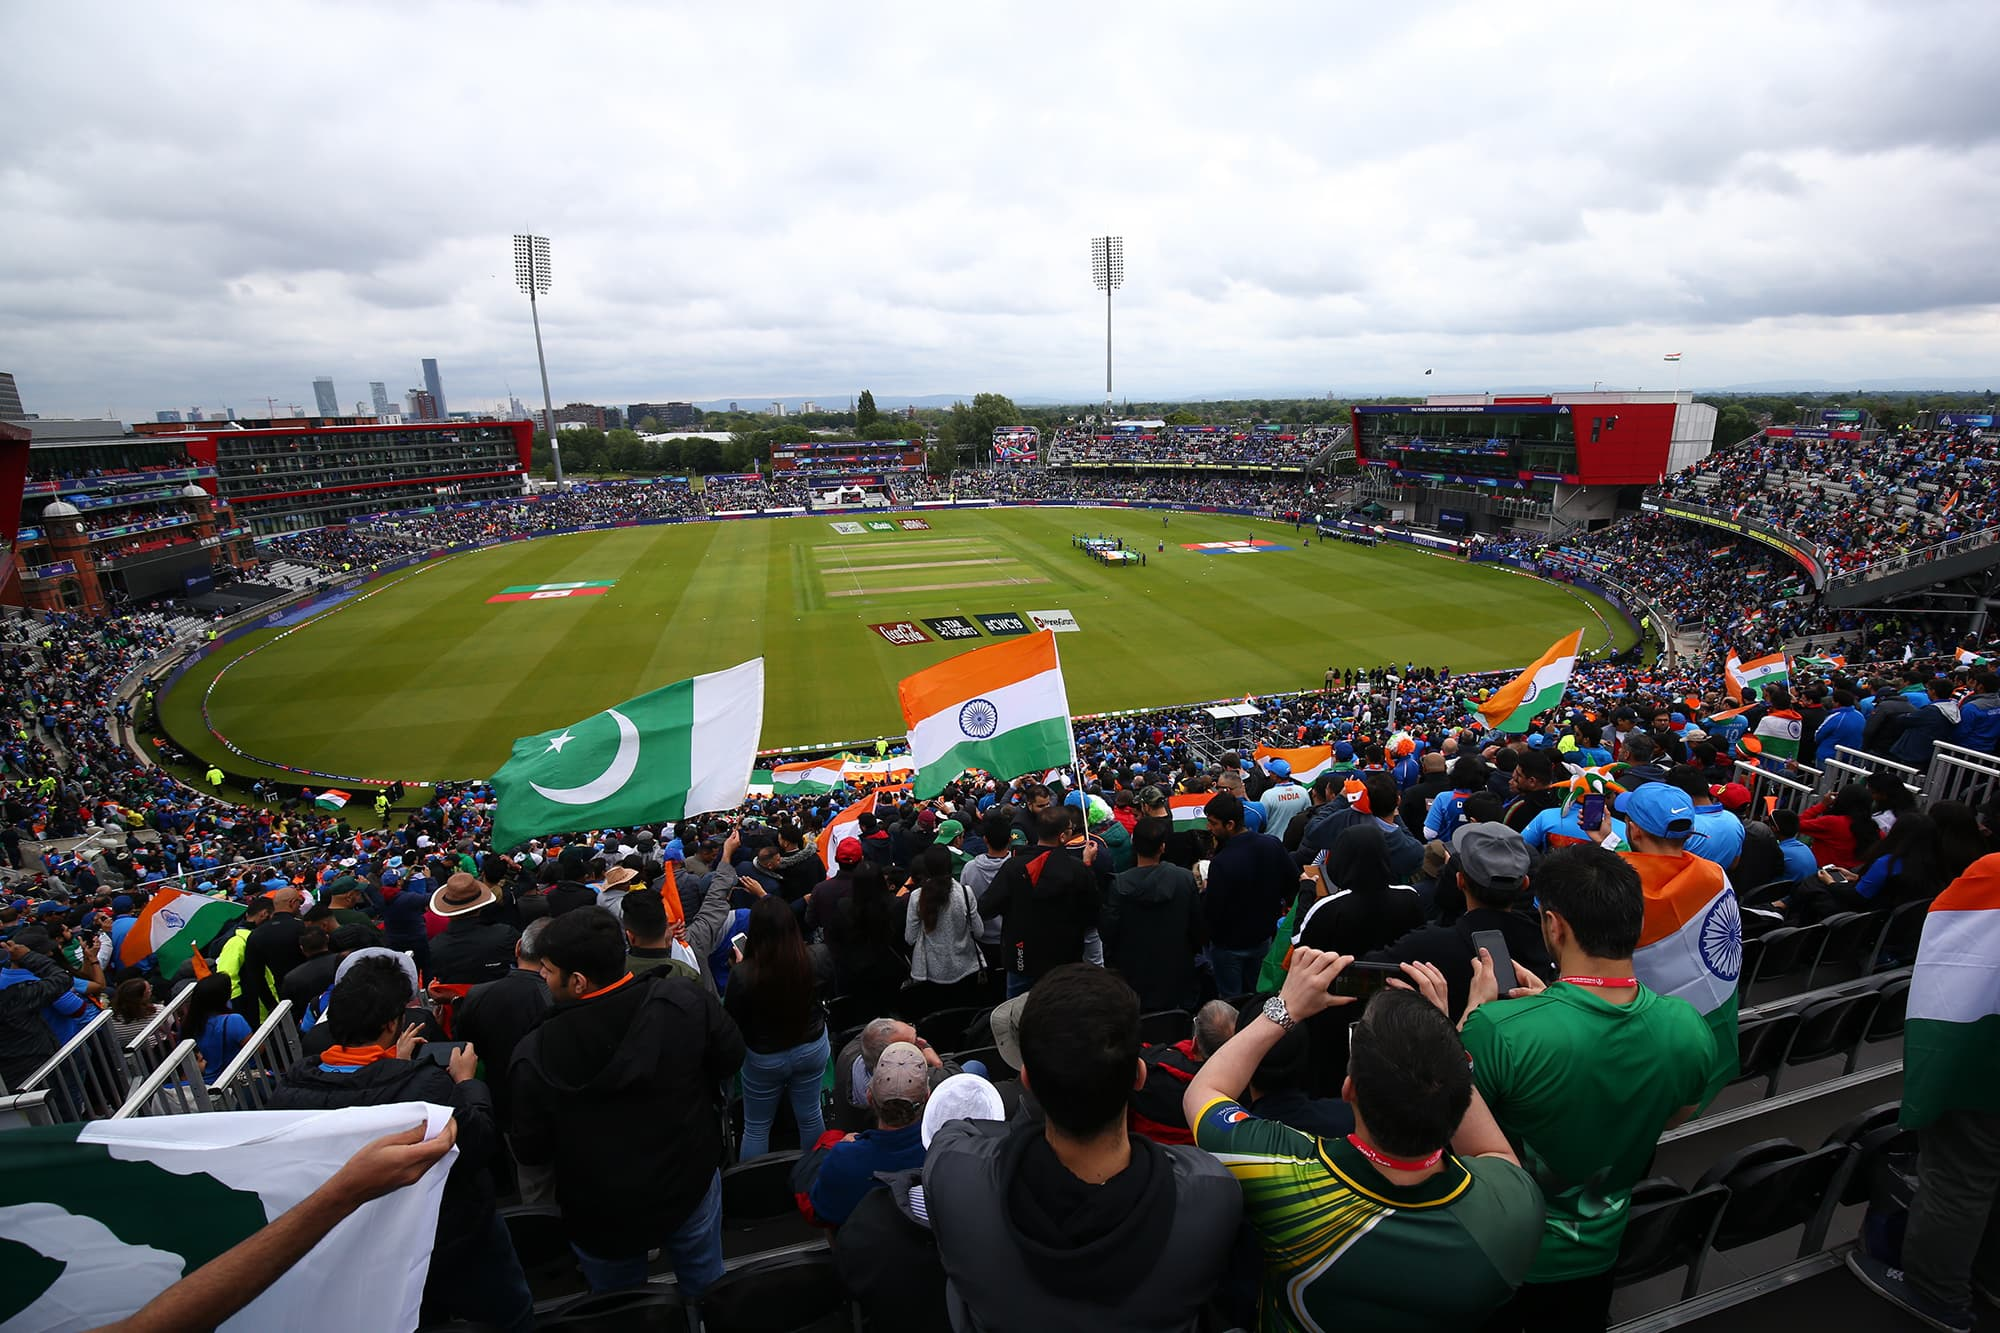 Fans attend the Cricket World Cup match between India and Pakistan at Old Trafford in Manchester, England, Sunday, June 16, 2019. (AP Photo/Dave Thompson) — Copyright 2019 The Associated Press. All rights reserved